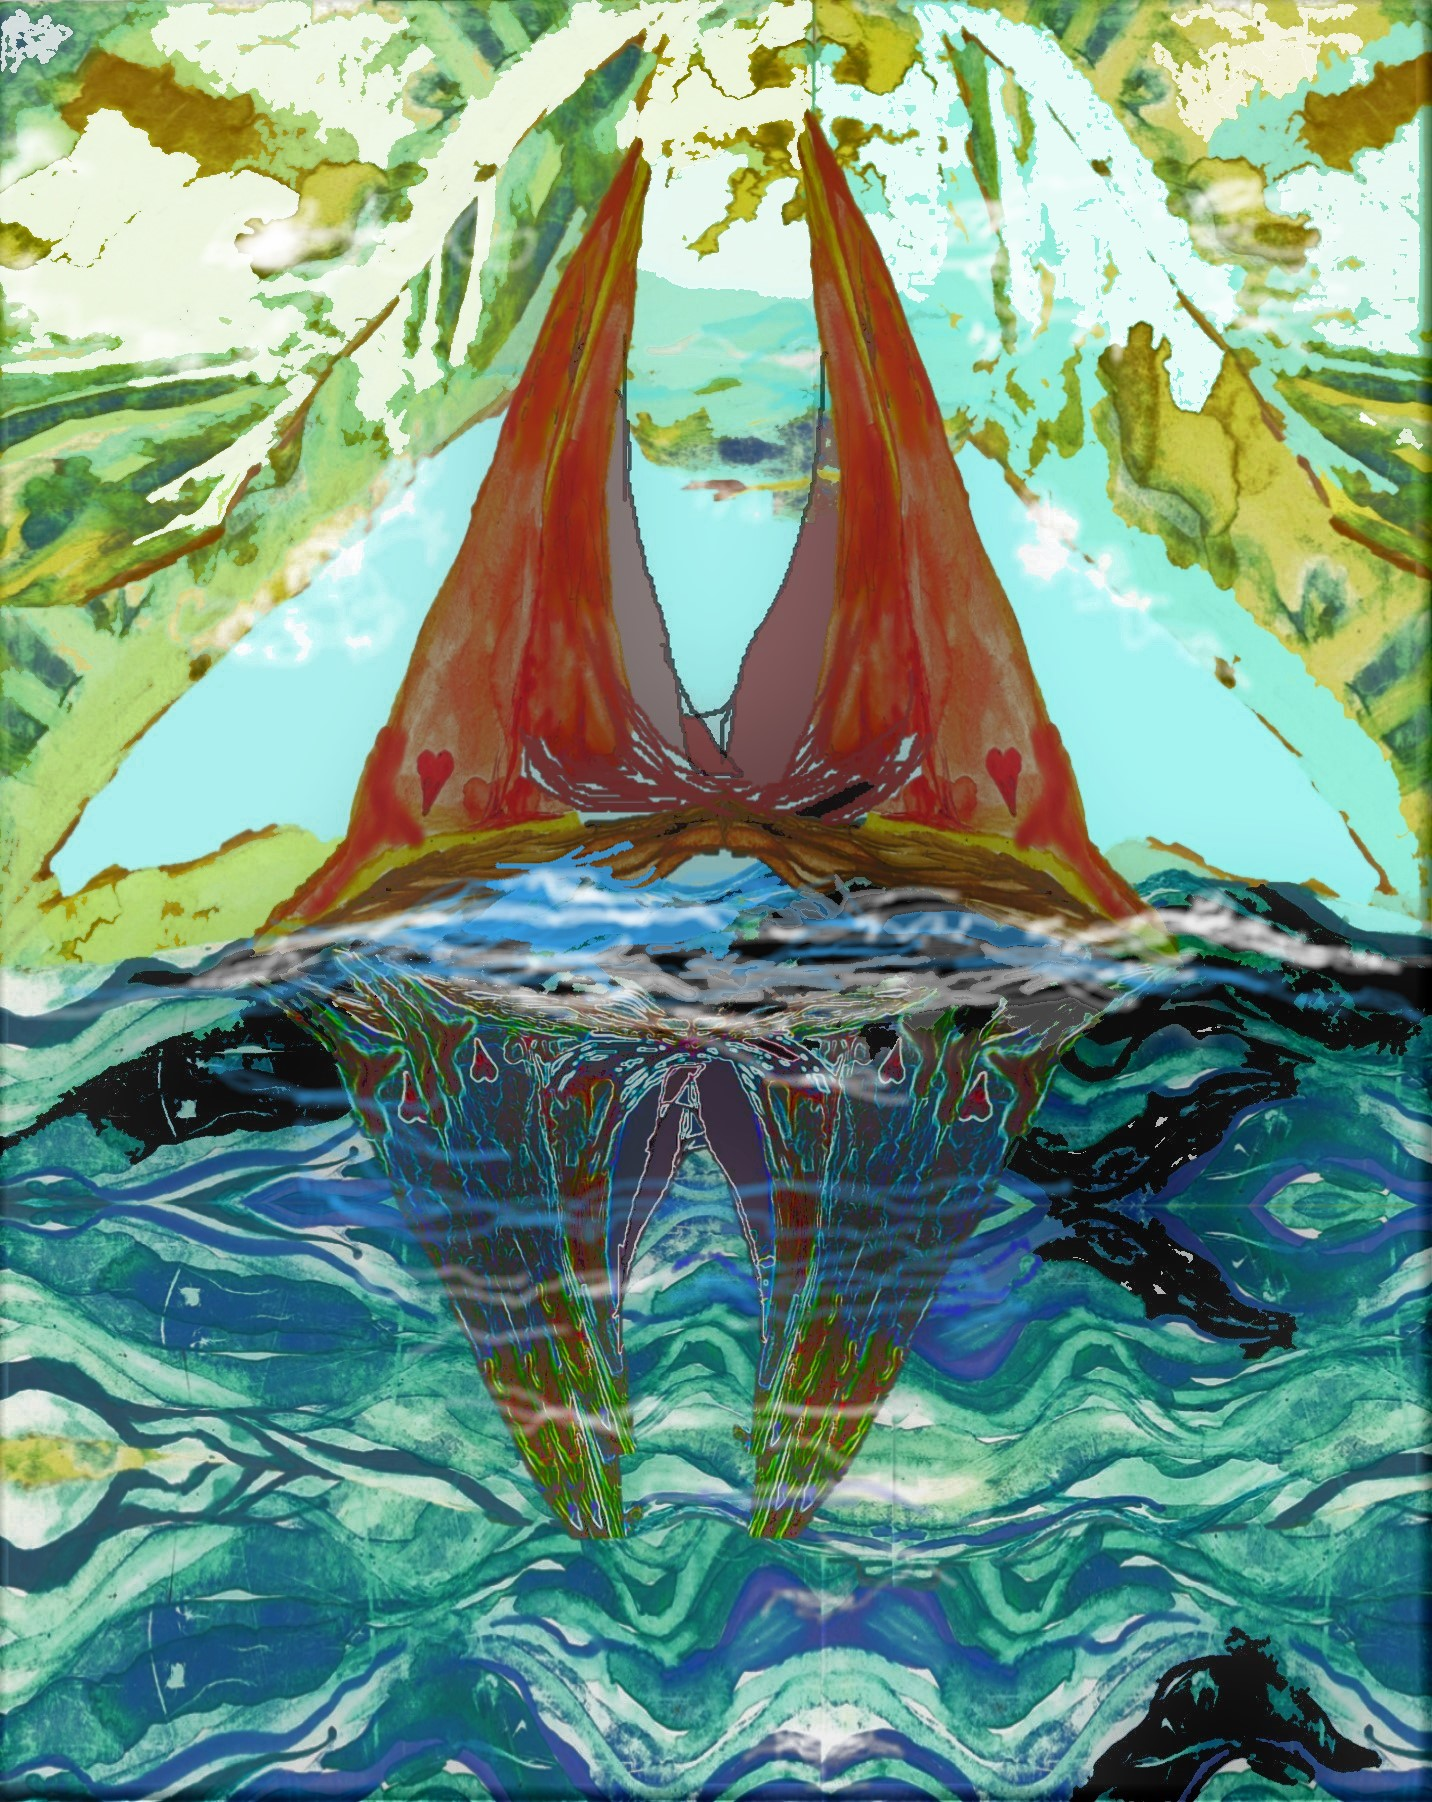 Sailboats-Inseparable-with-tattered-sails-2